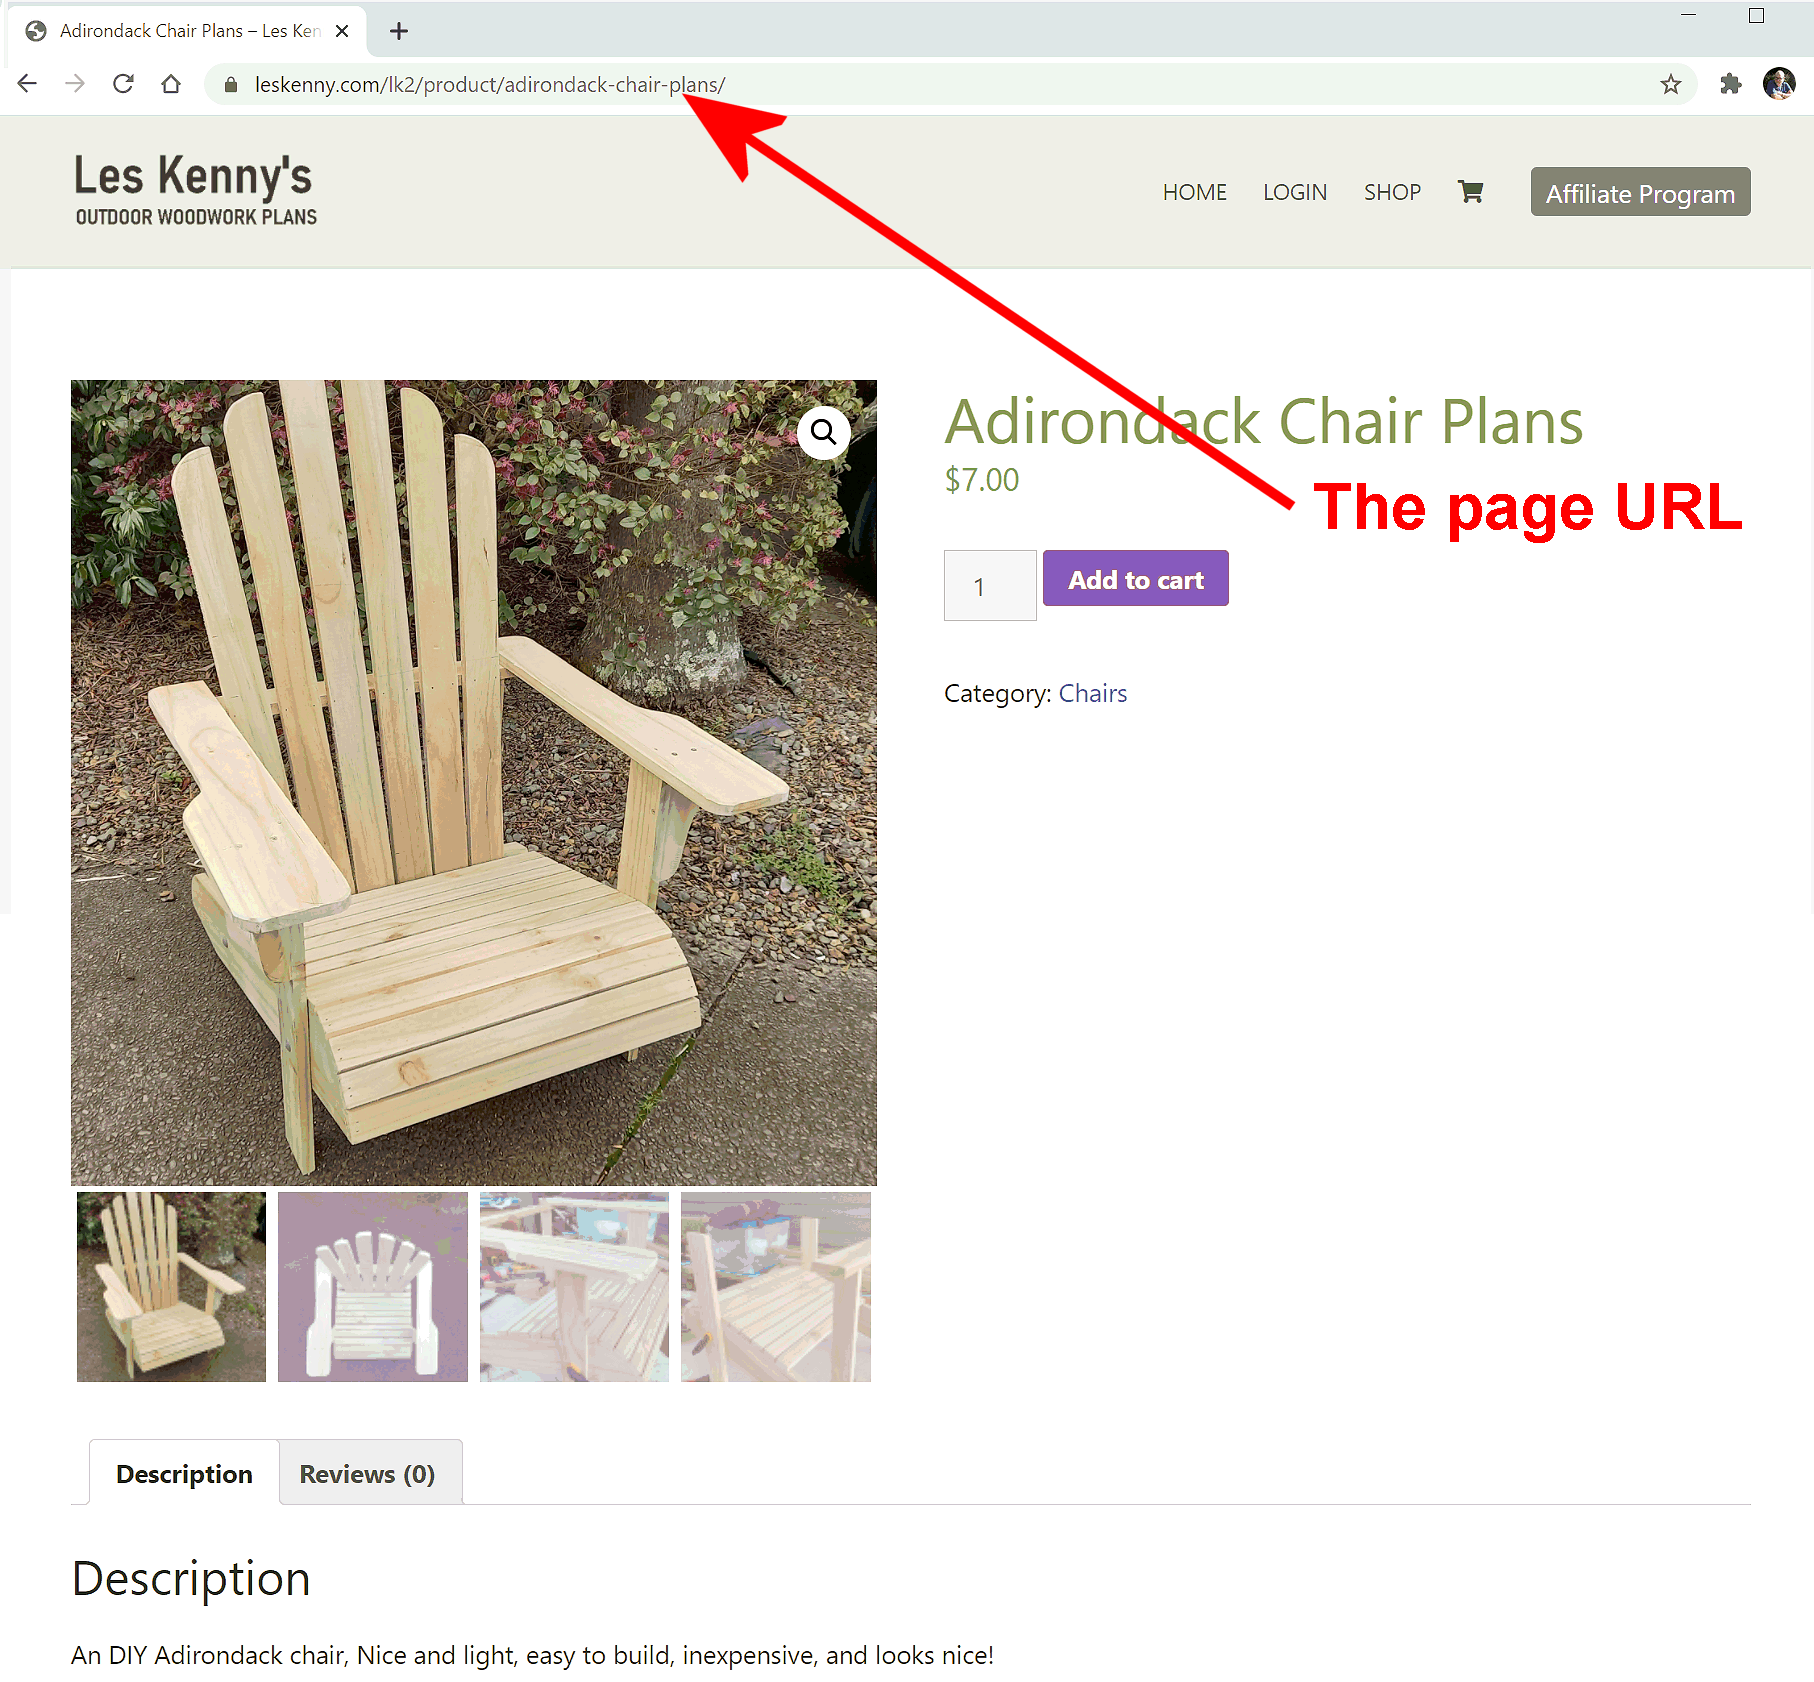 Adirondack chair plan sales page